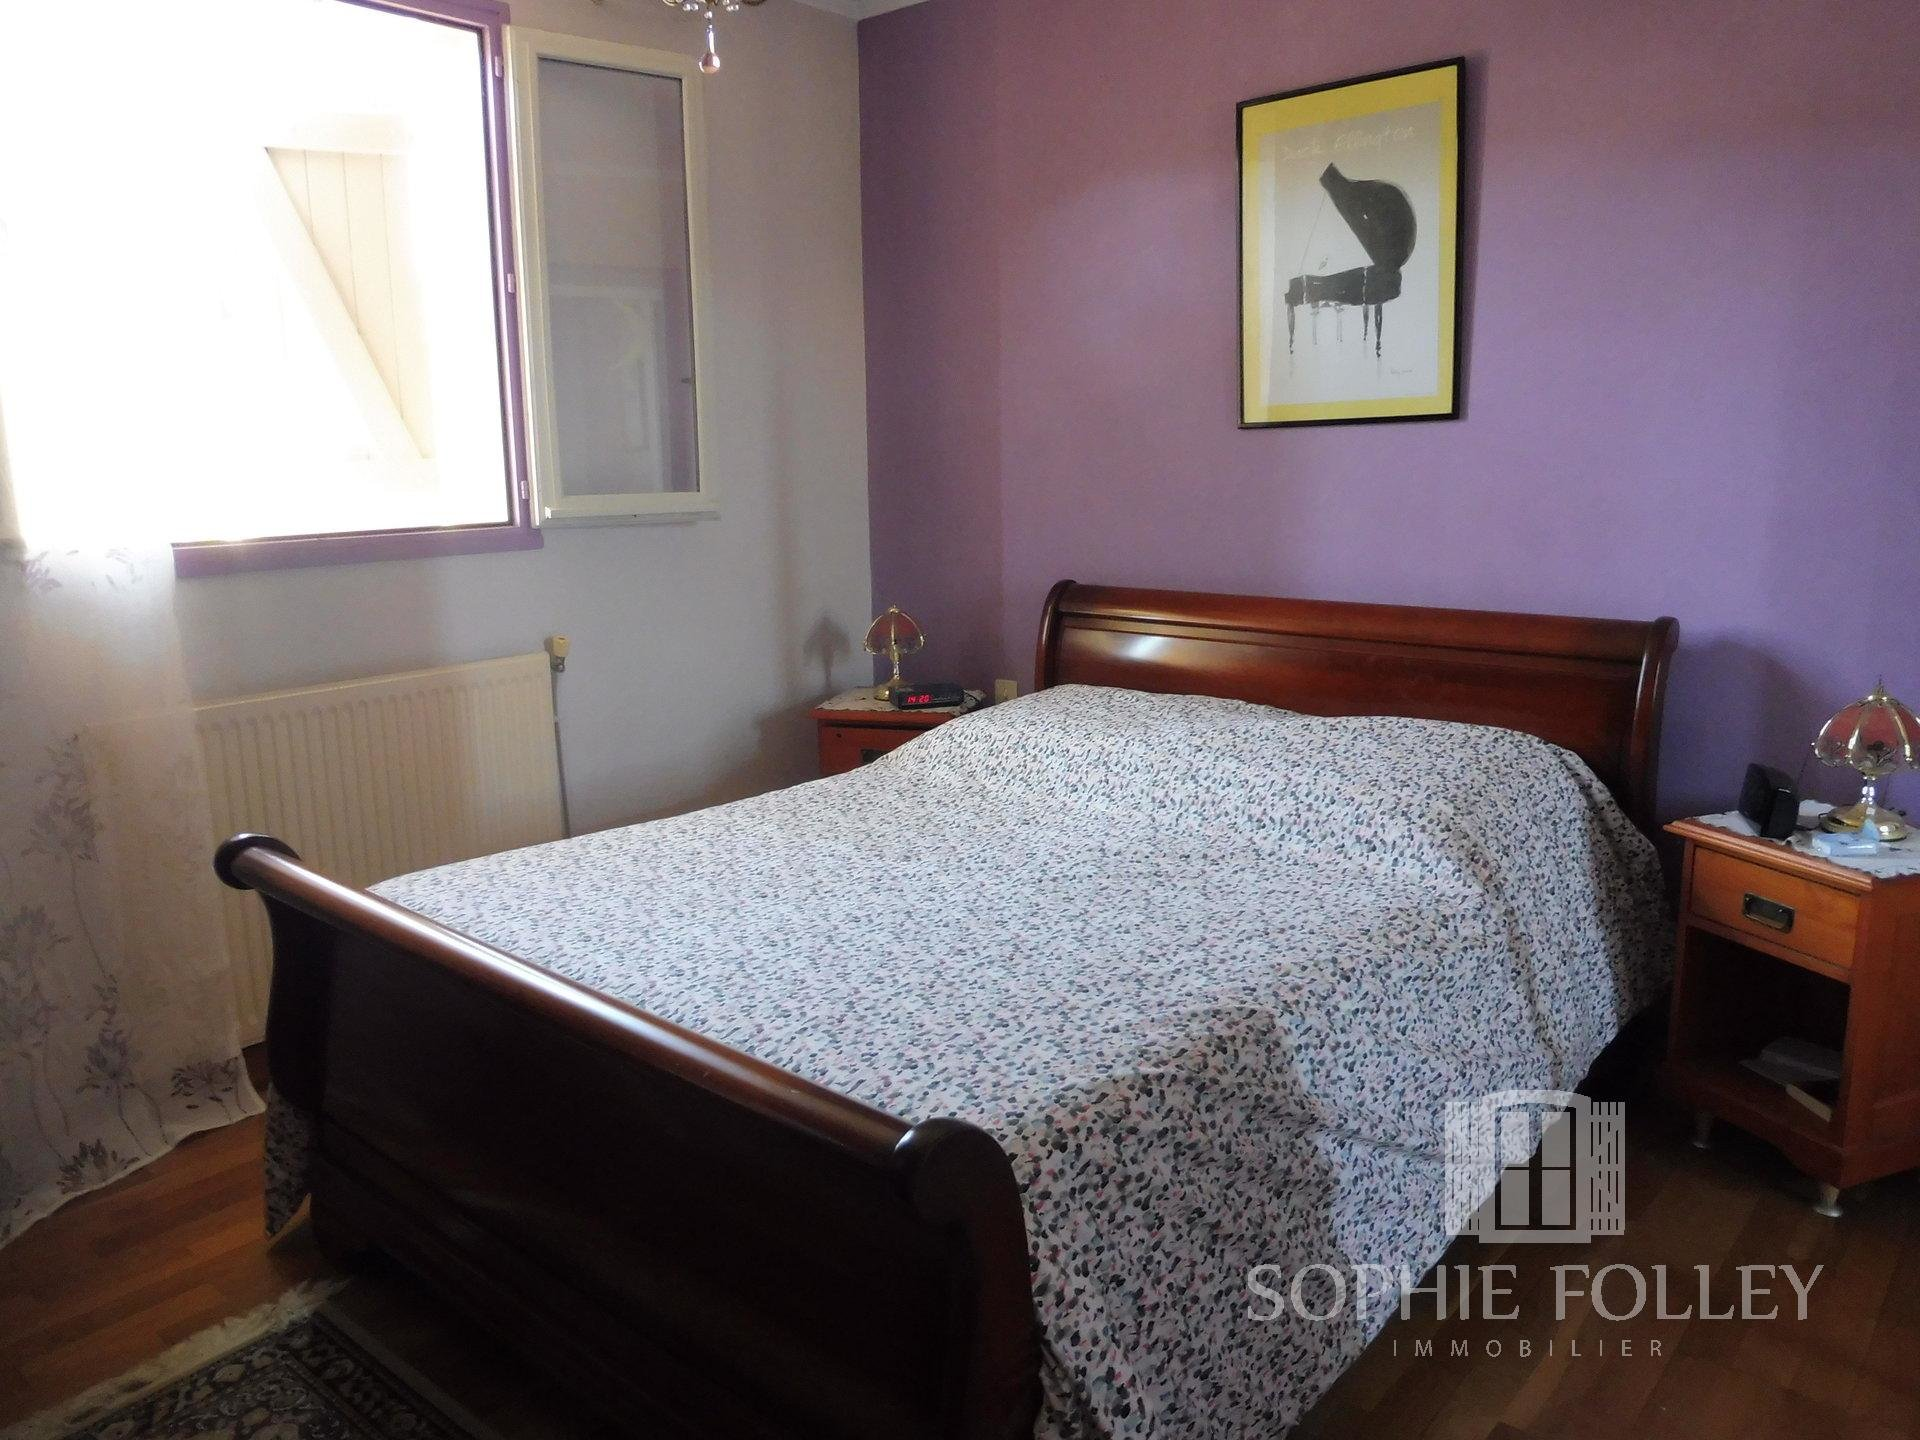 A well maintained property with garden, clost to town centre